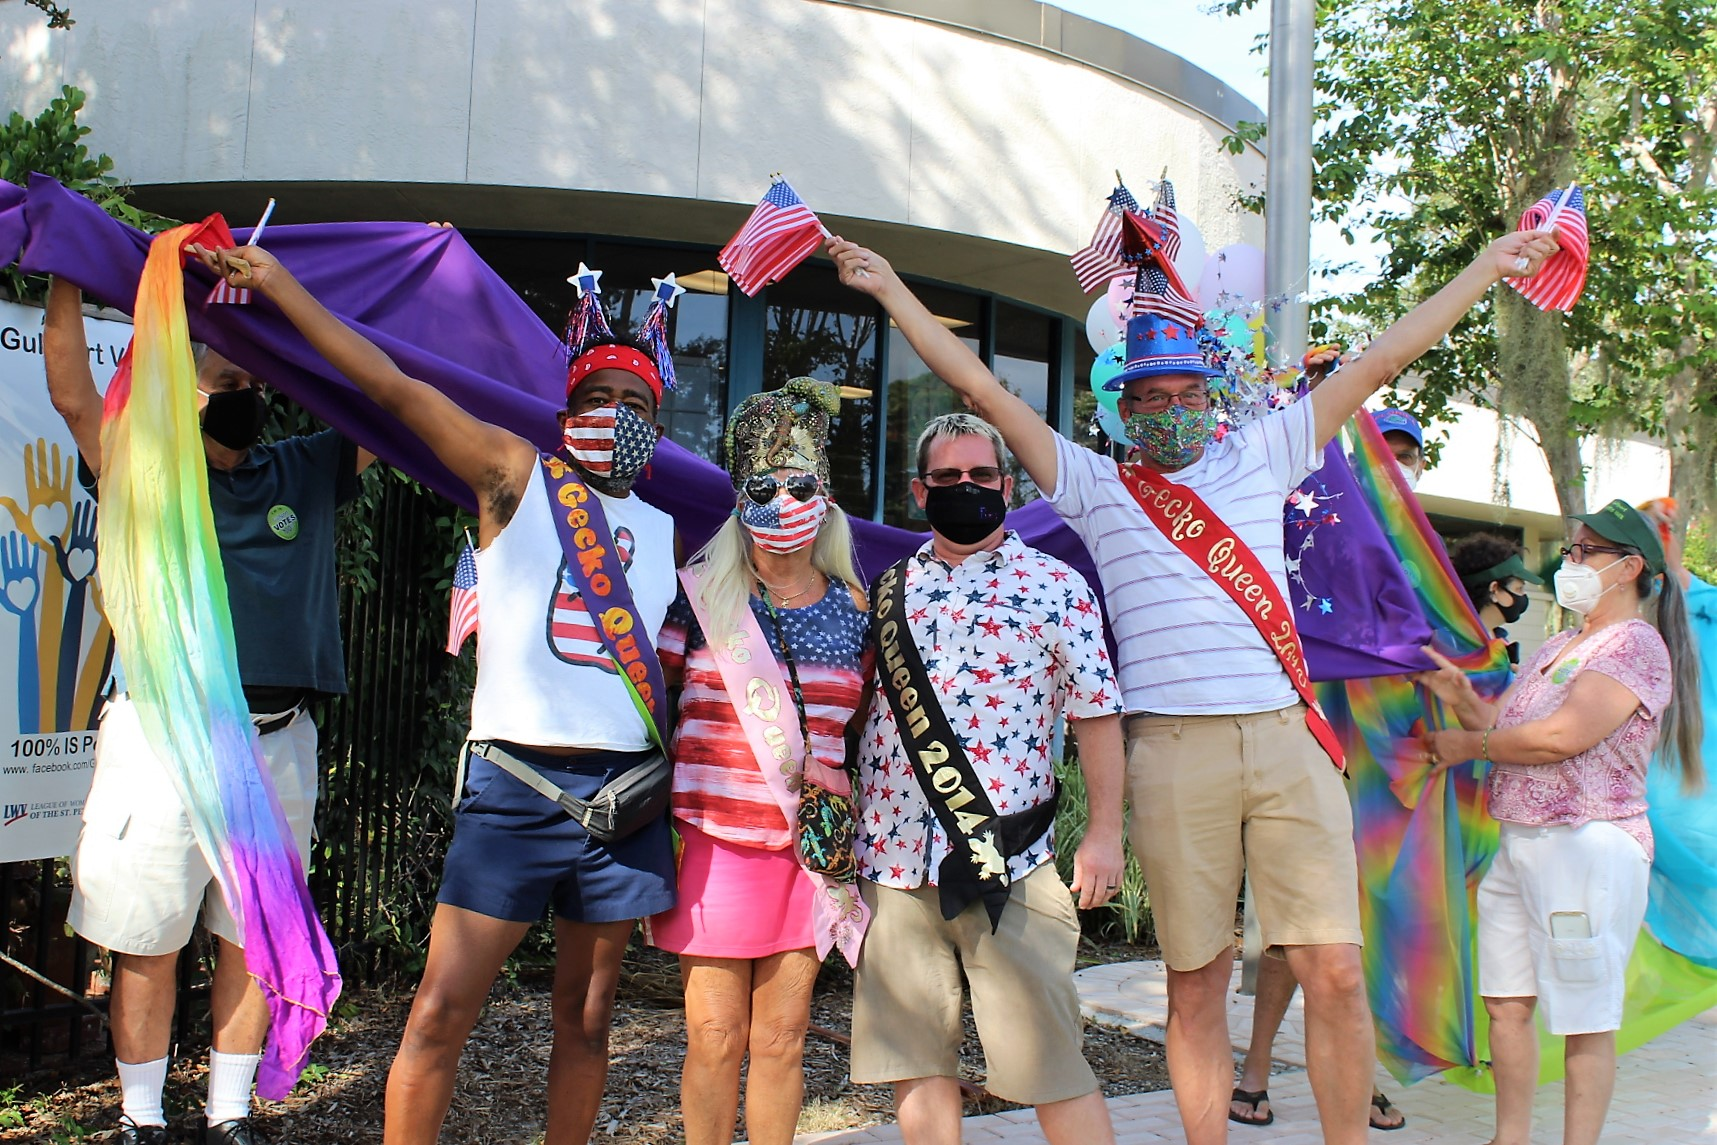 Four people in bright colors and sashes raising their arms in celebration.